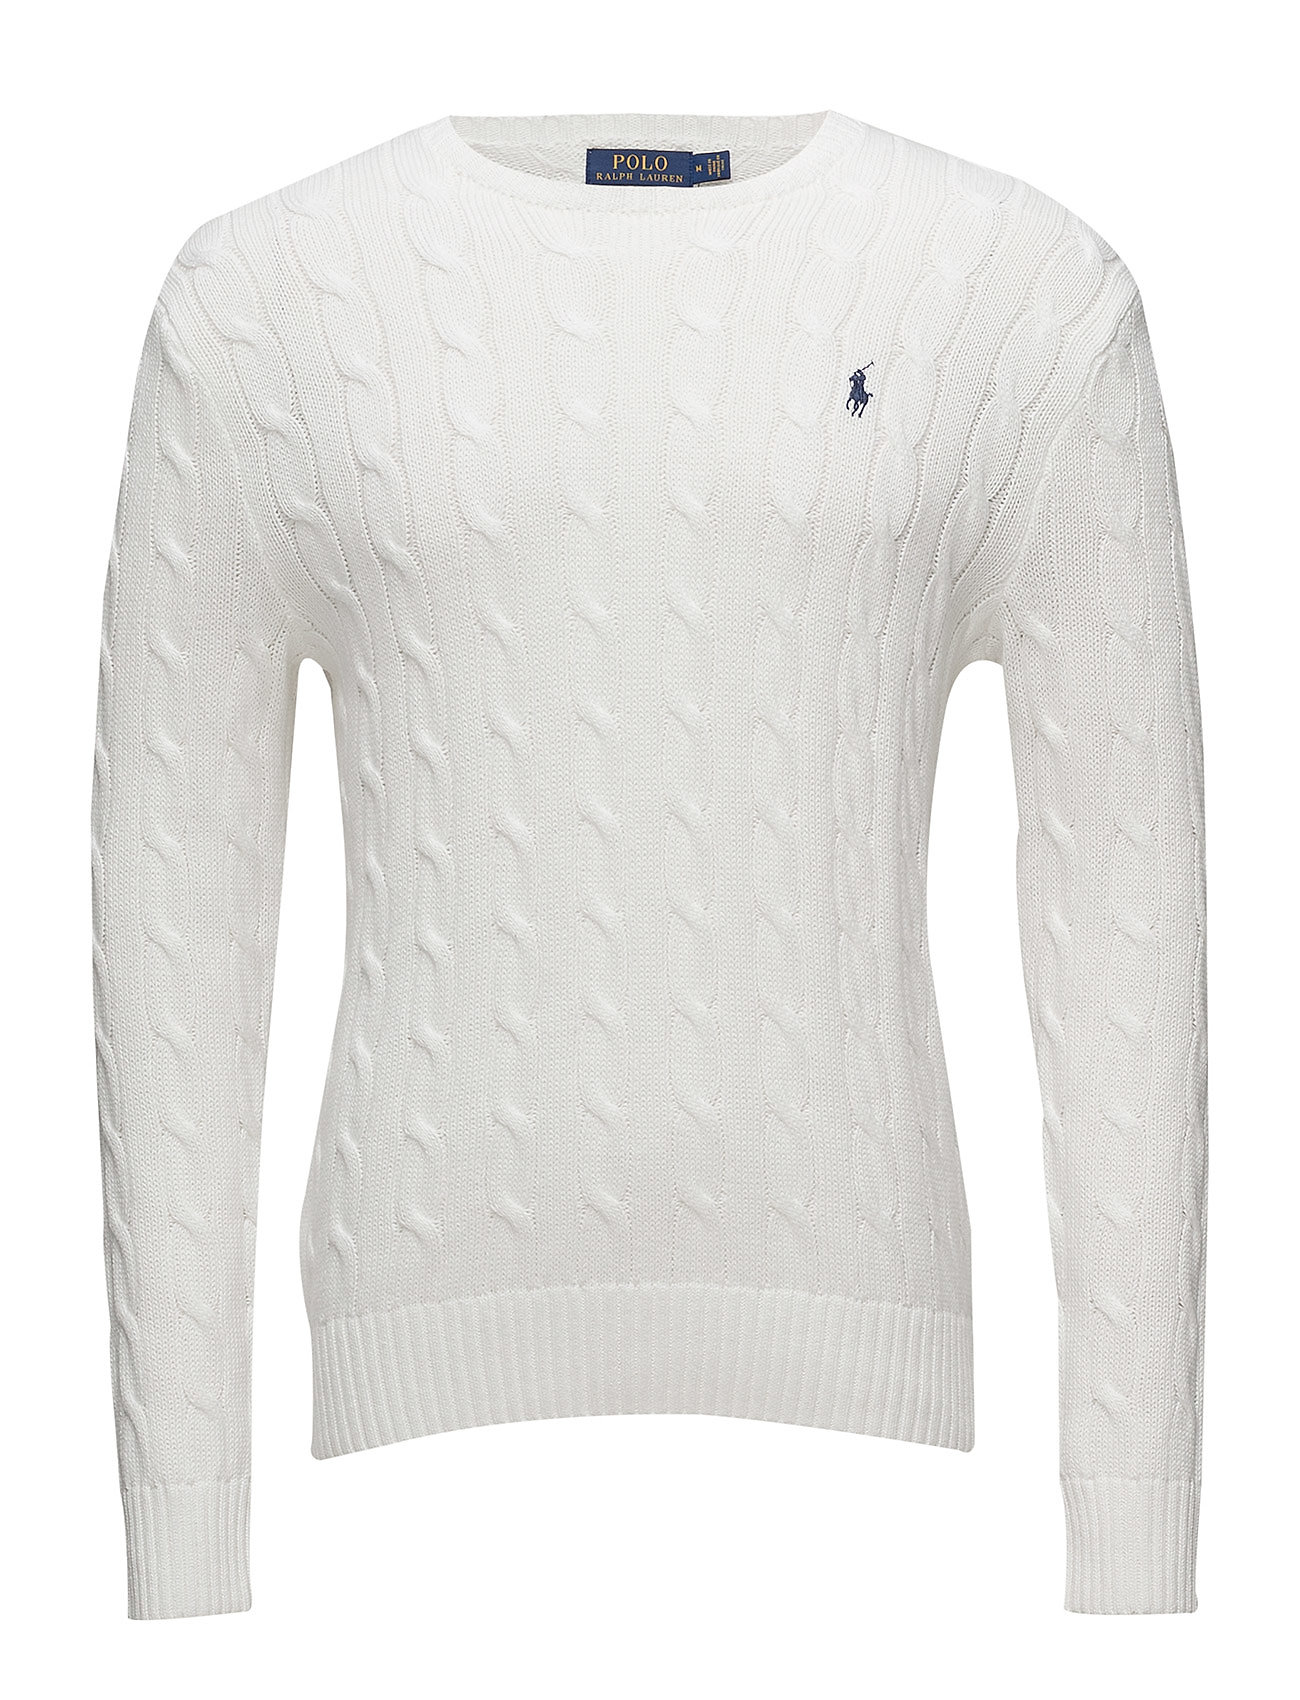 Polo Ralph Lauren Cable-Knit Cotton Sweater - WHITE